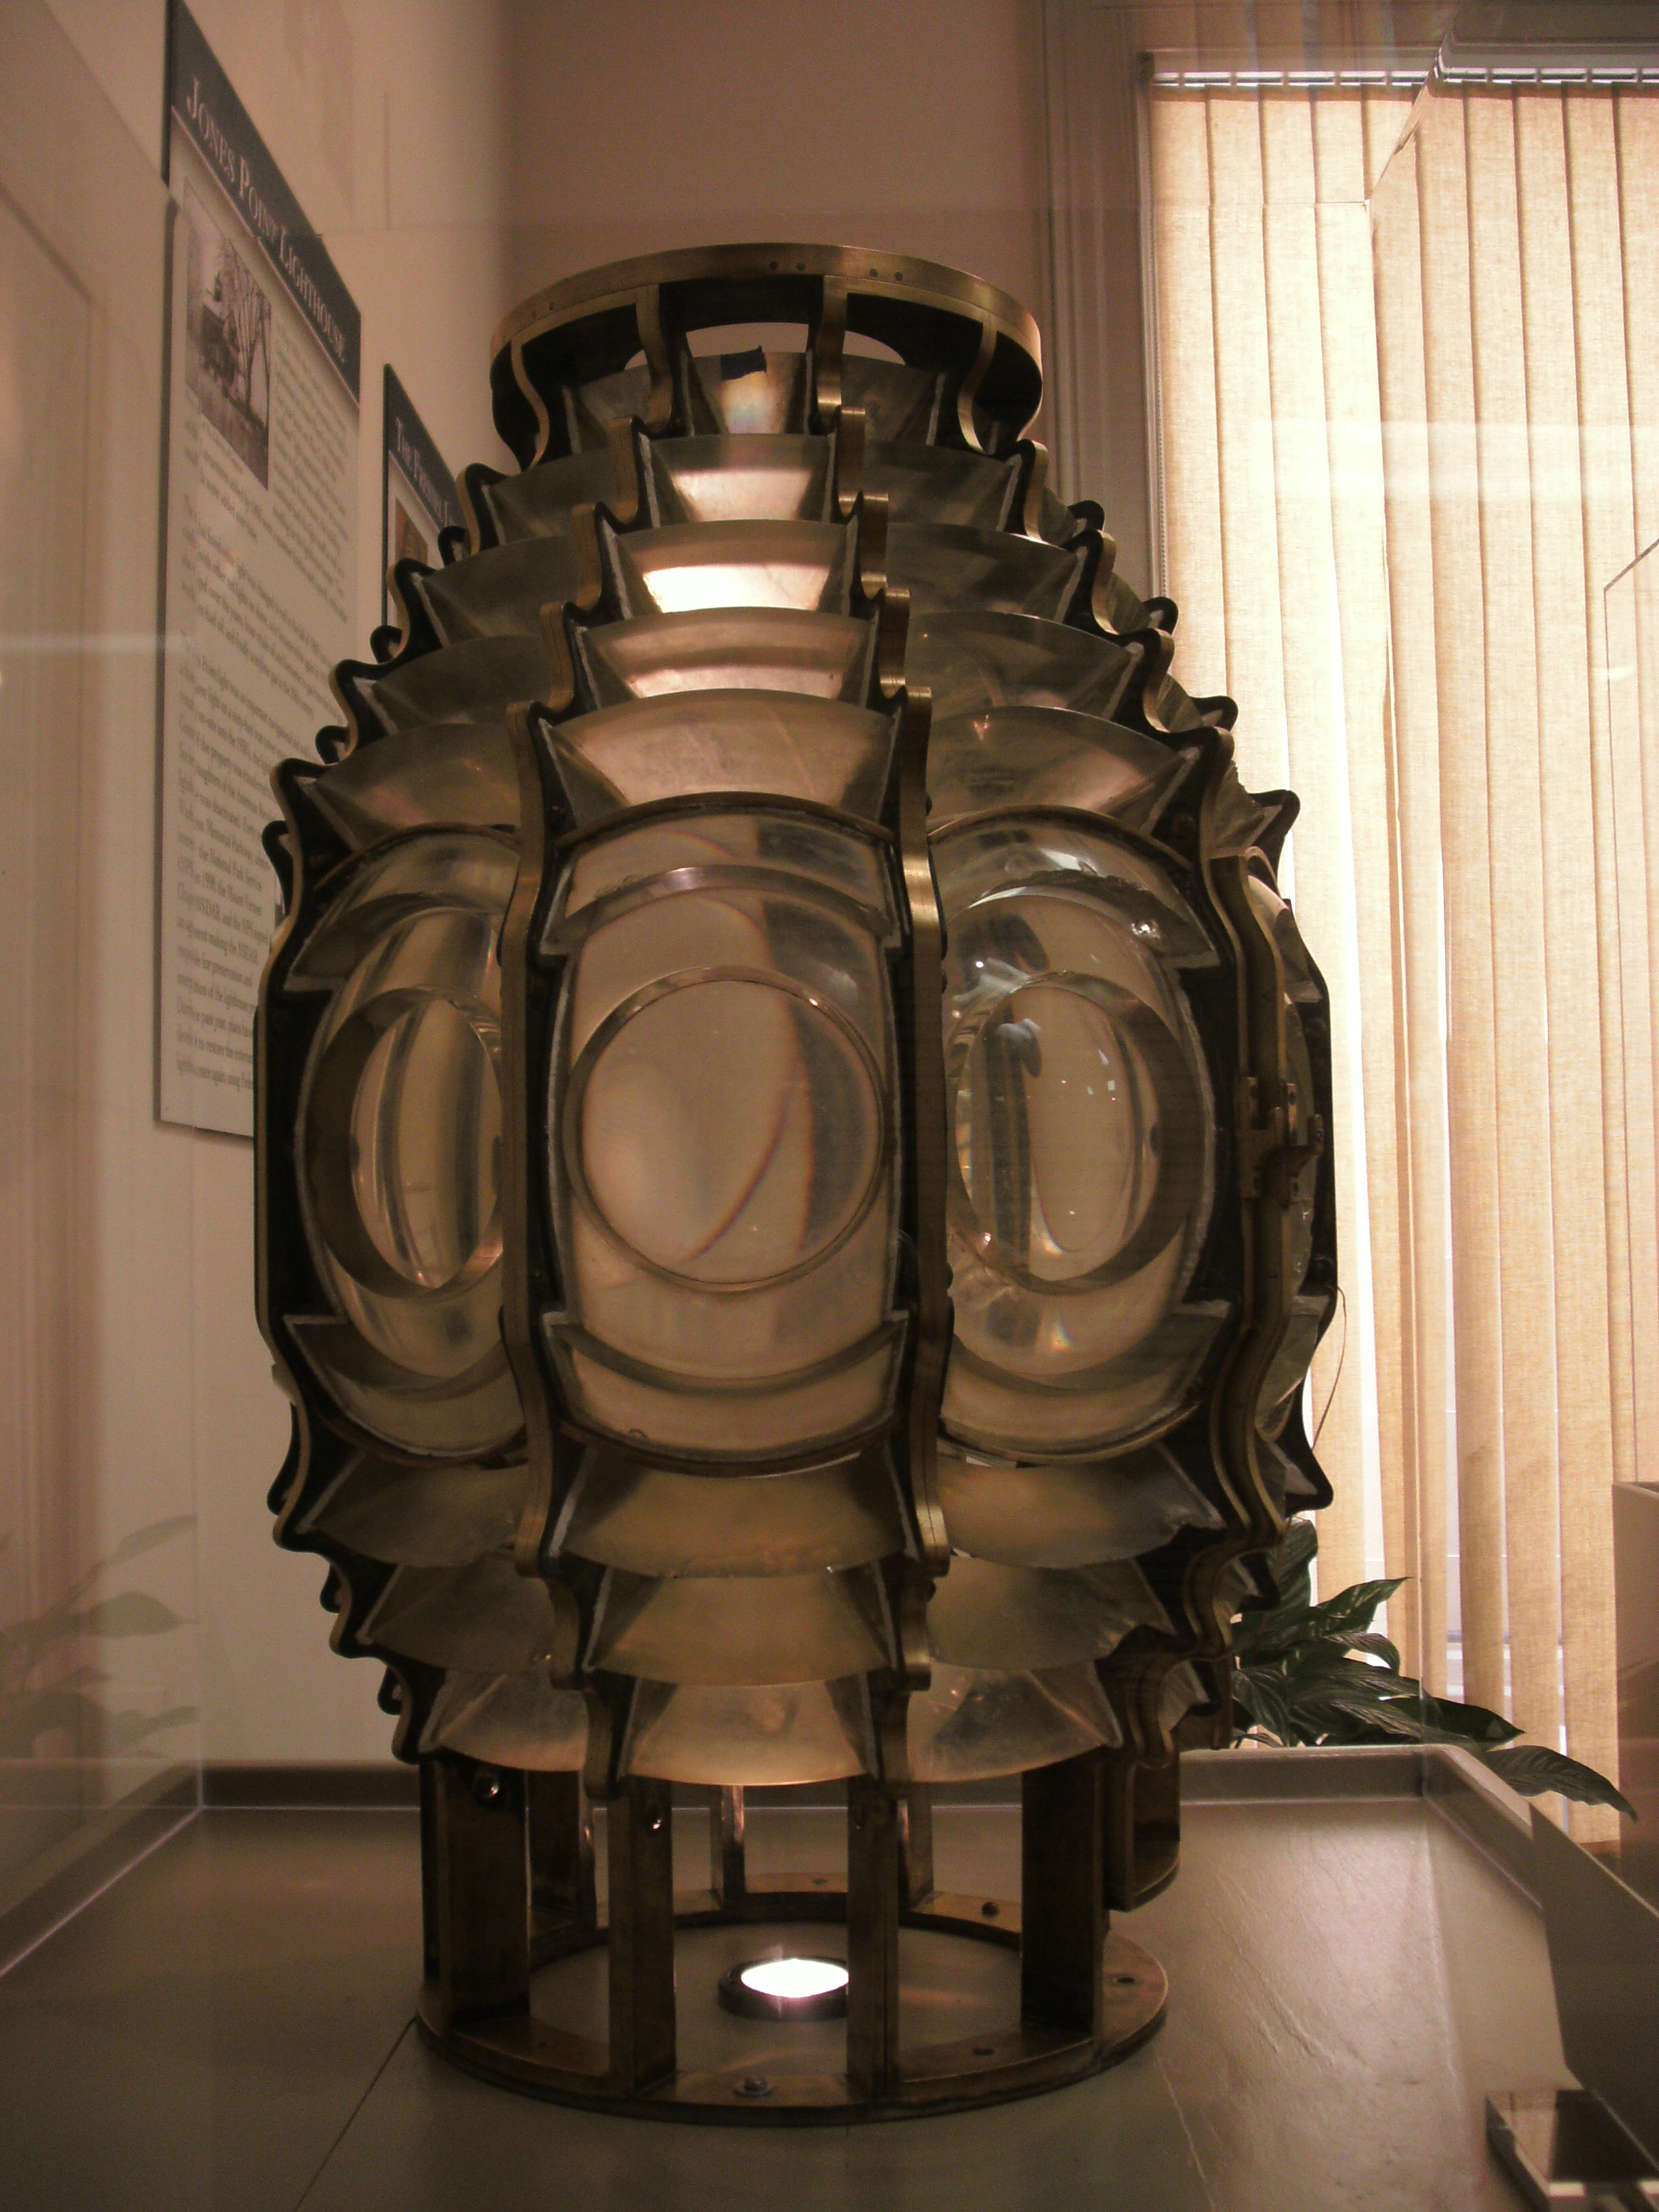 The fifth-order Fresnel lens once used at the lighthouse, on display at The Lyceum, Alexandria's history museum. Image by Ser Amantio di Nicolao at English Wikipedia, CC BY 3.0, https://commons.wikimedia.org/w/index.php?curid=26636088